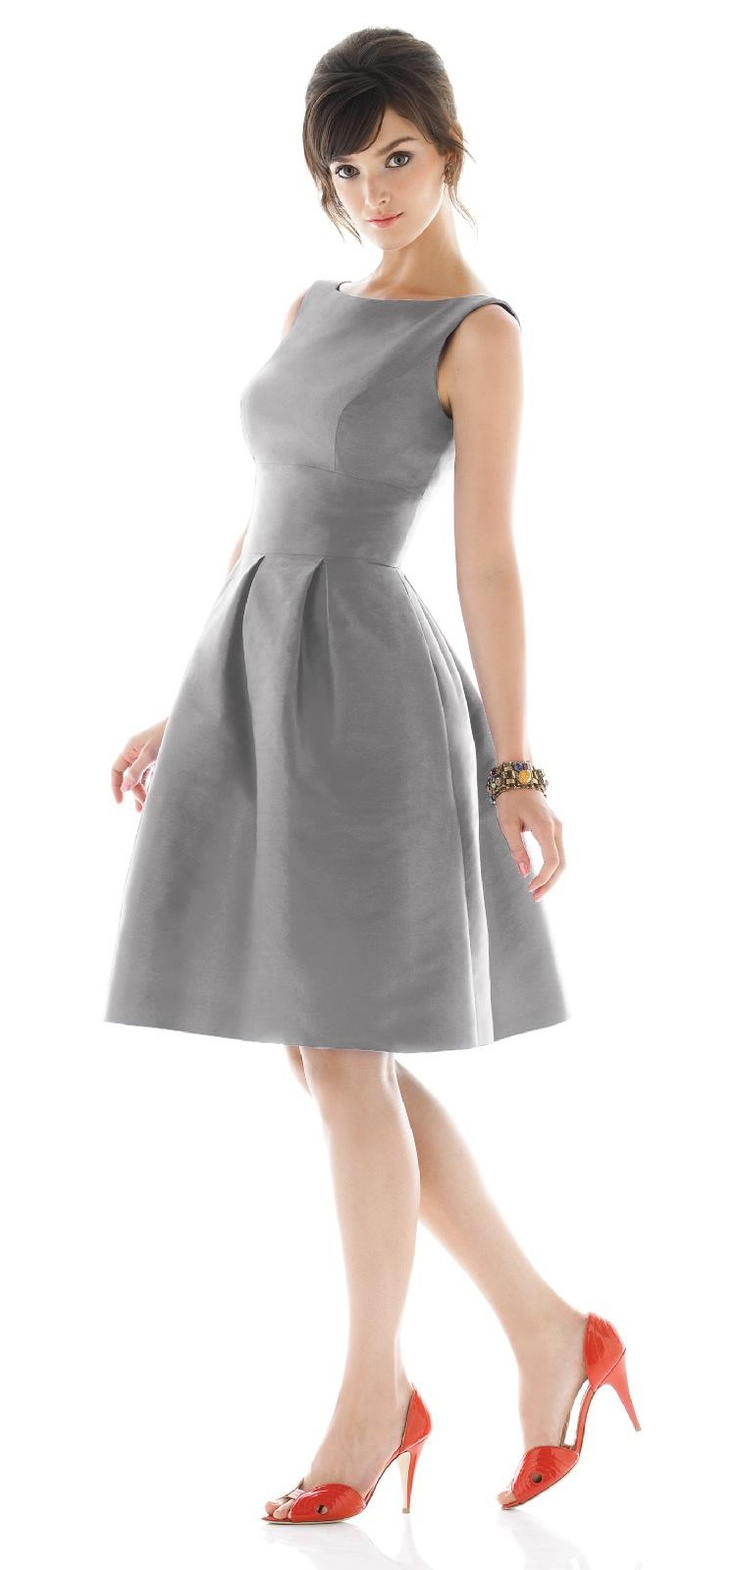 Mad Men style retro dress / bridesmaid dress, multiple colors available. $164.00